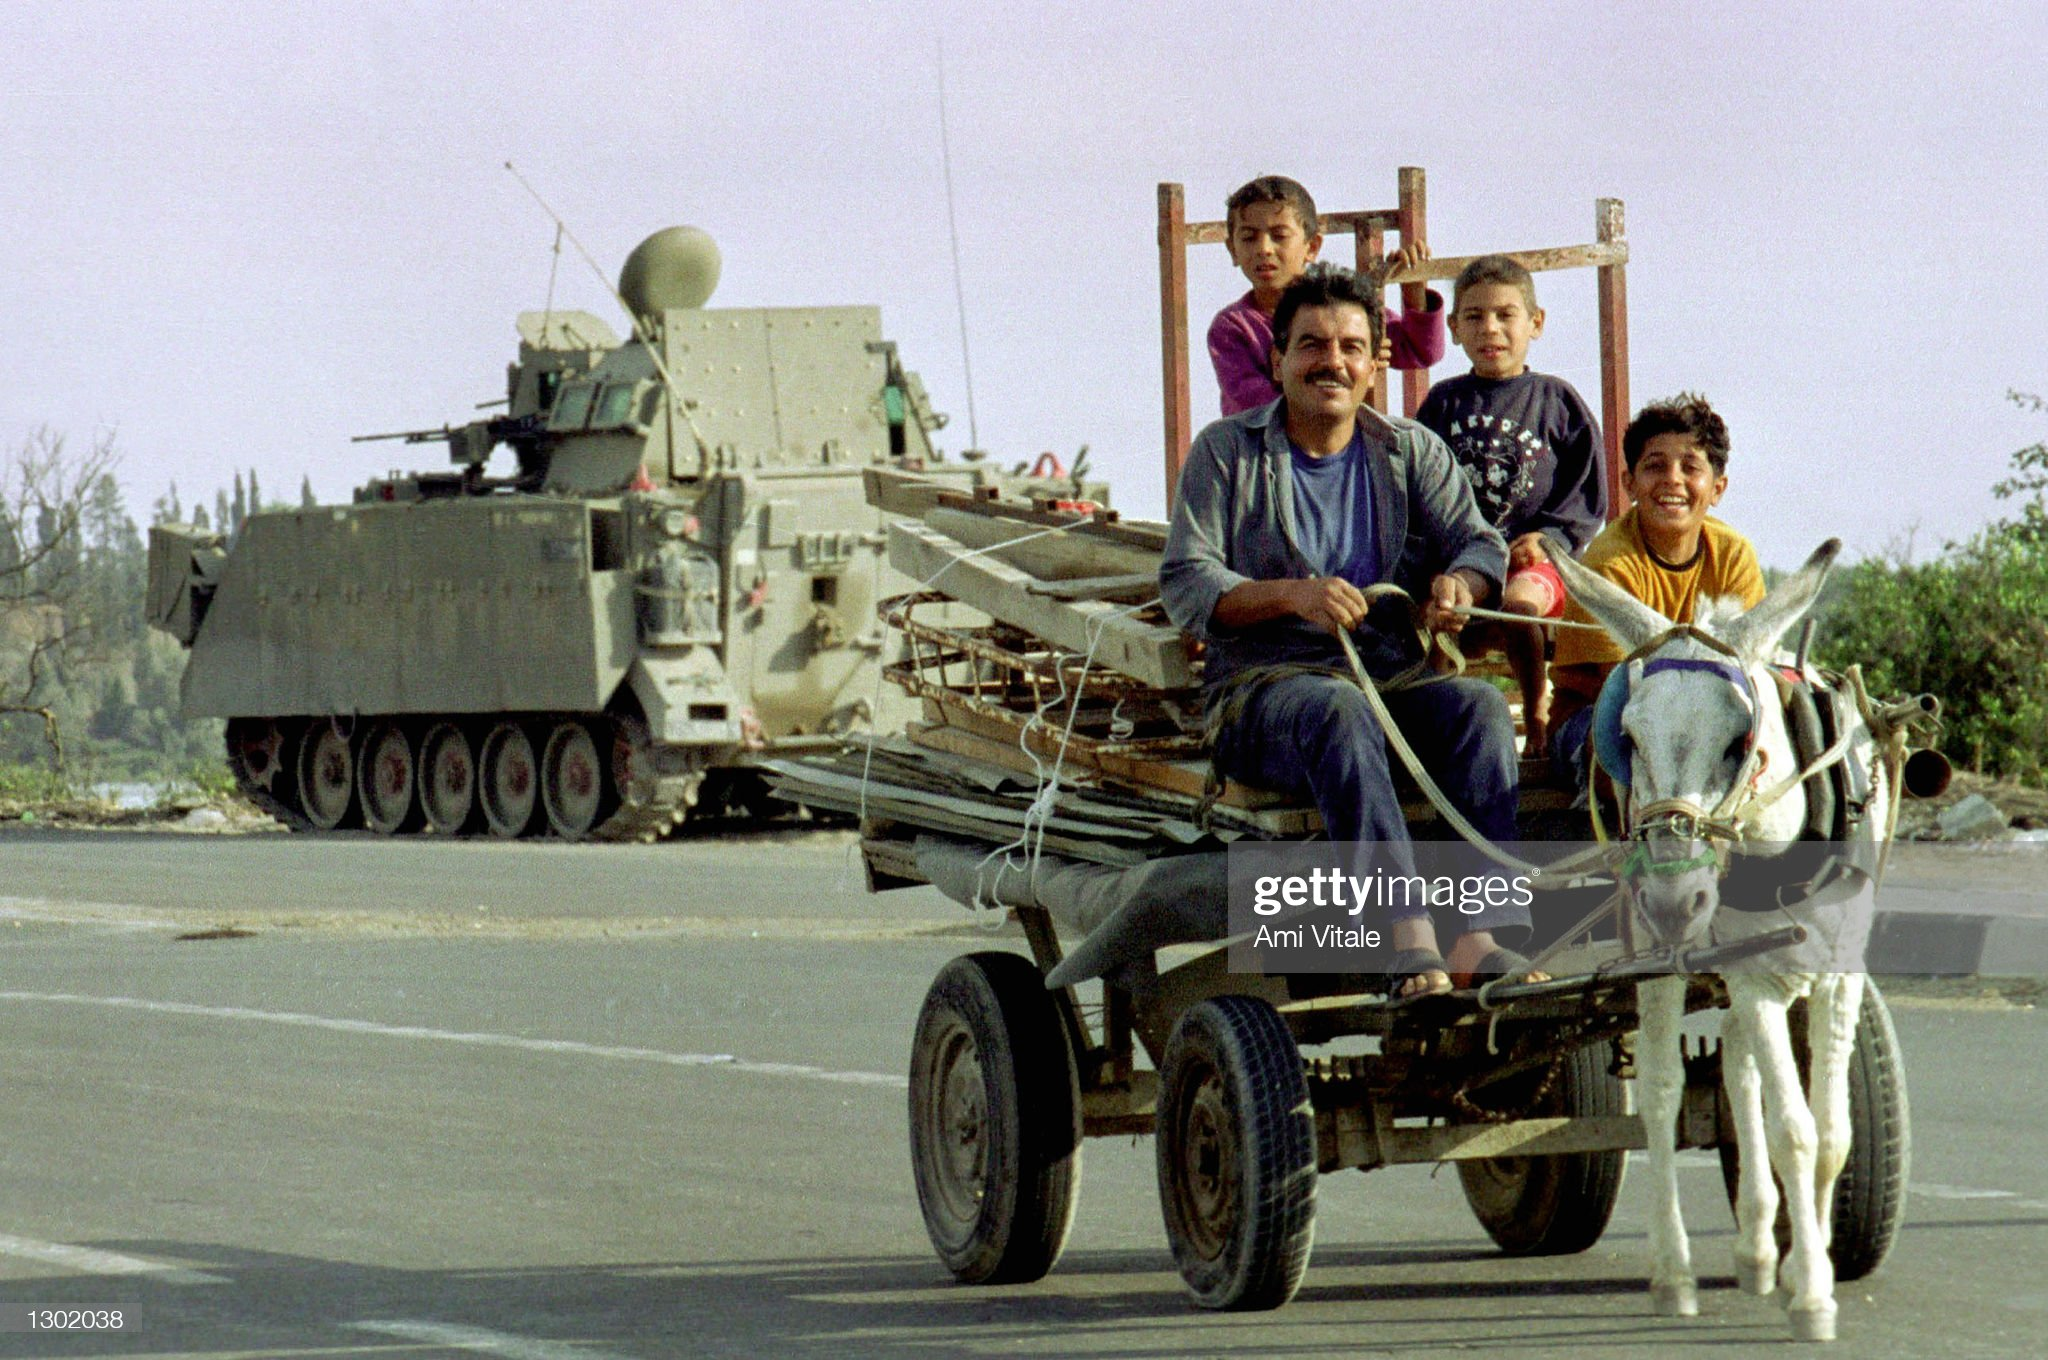 https://media.gettyimages.com/photos/palestinians-ride-a-by-an-israeli-tank-october-15-2000-in-netzarim-a-picture-id1302038?s=2048x2048